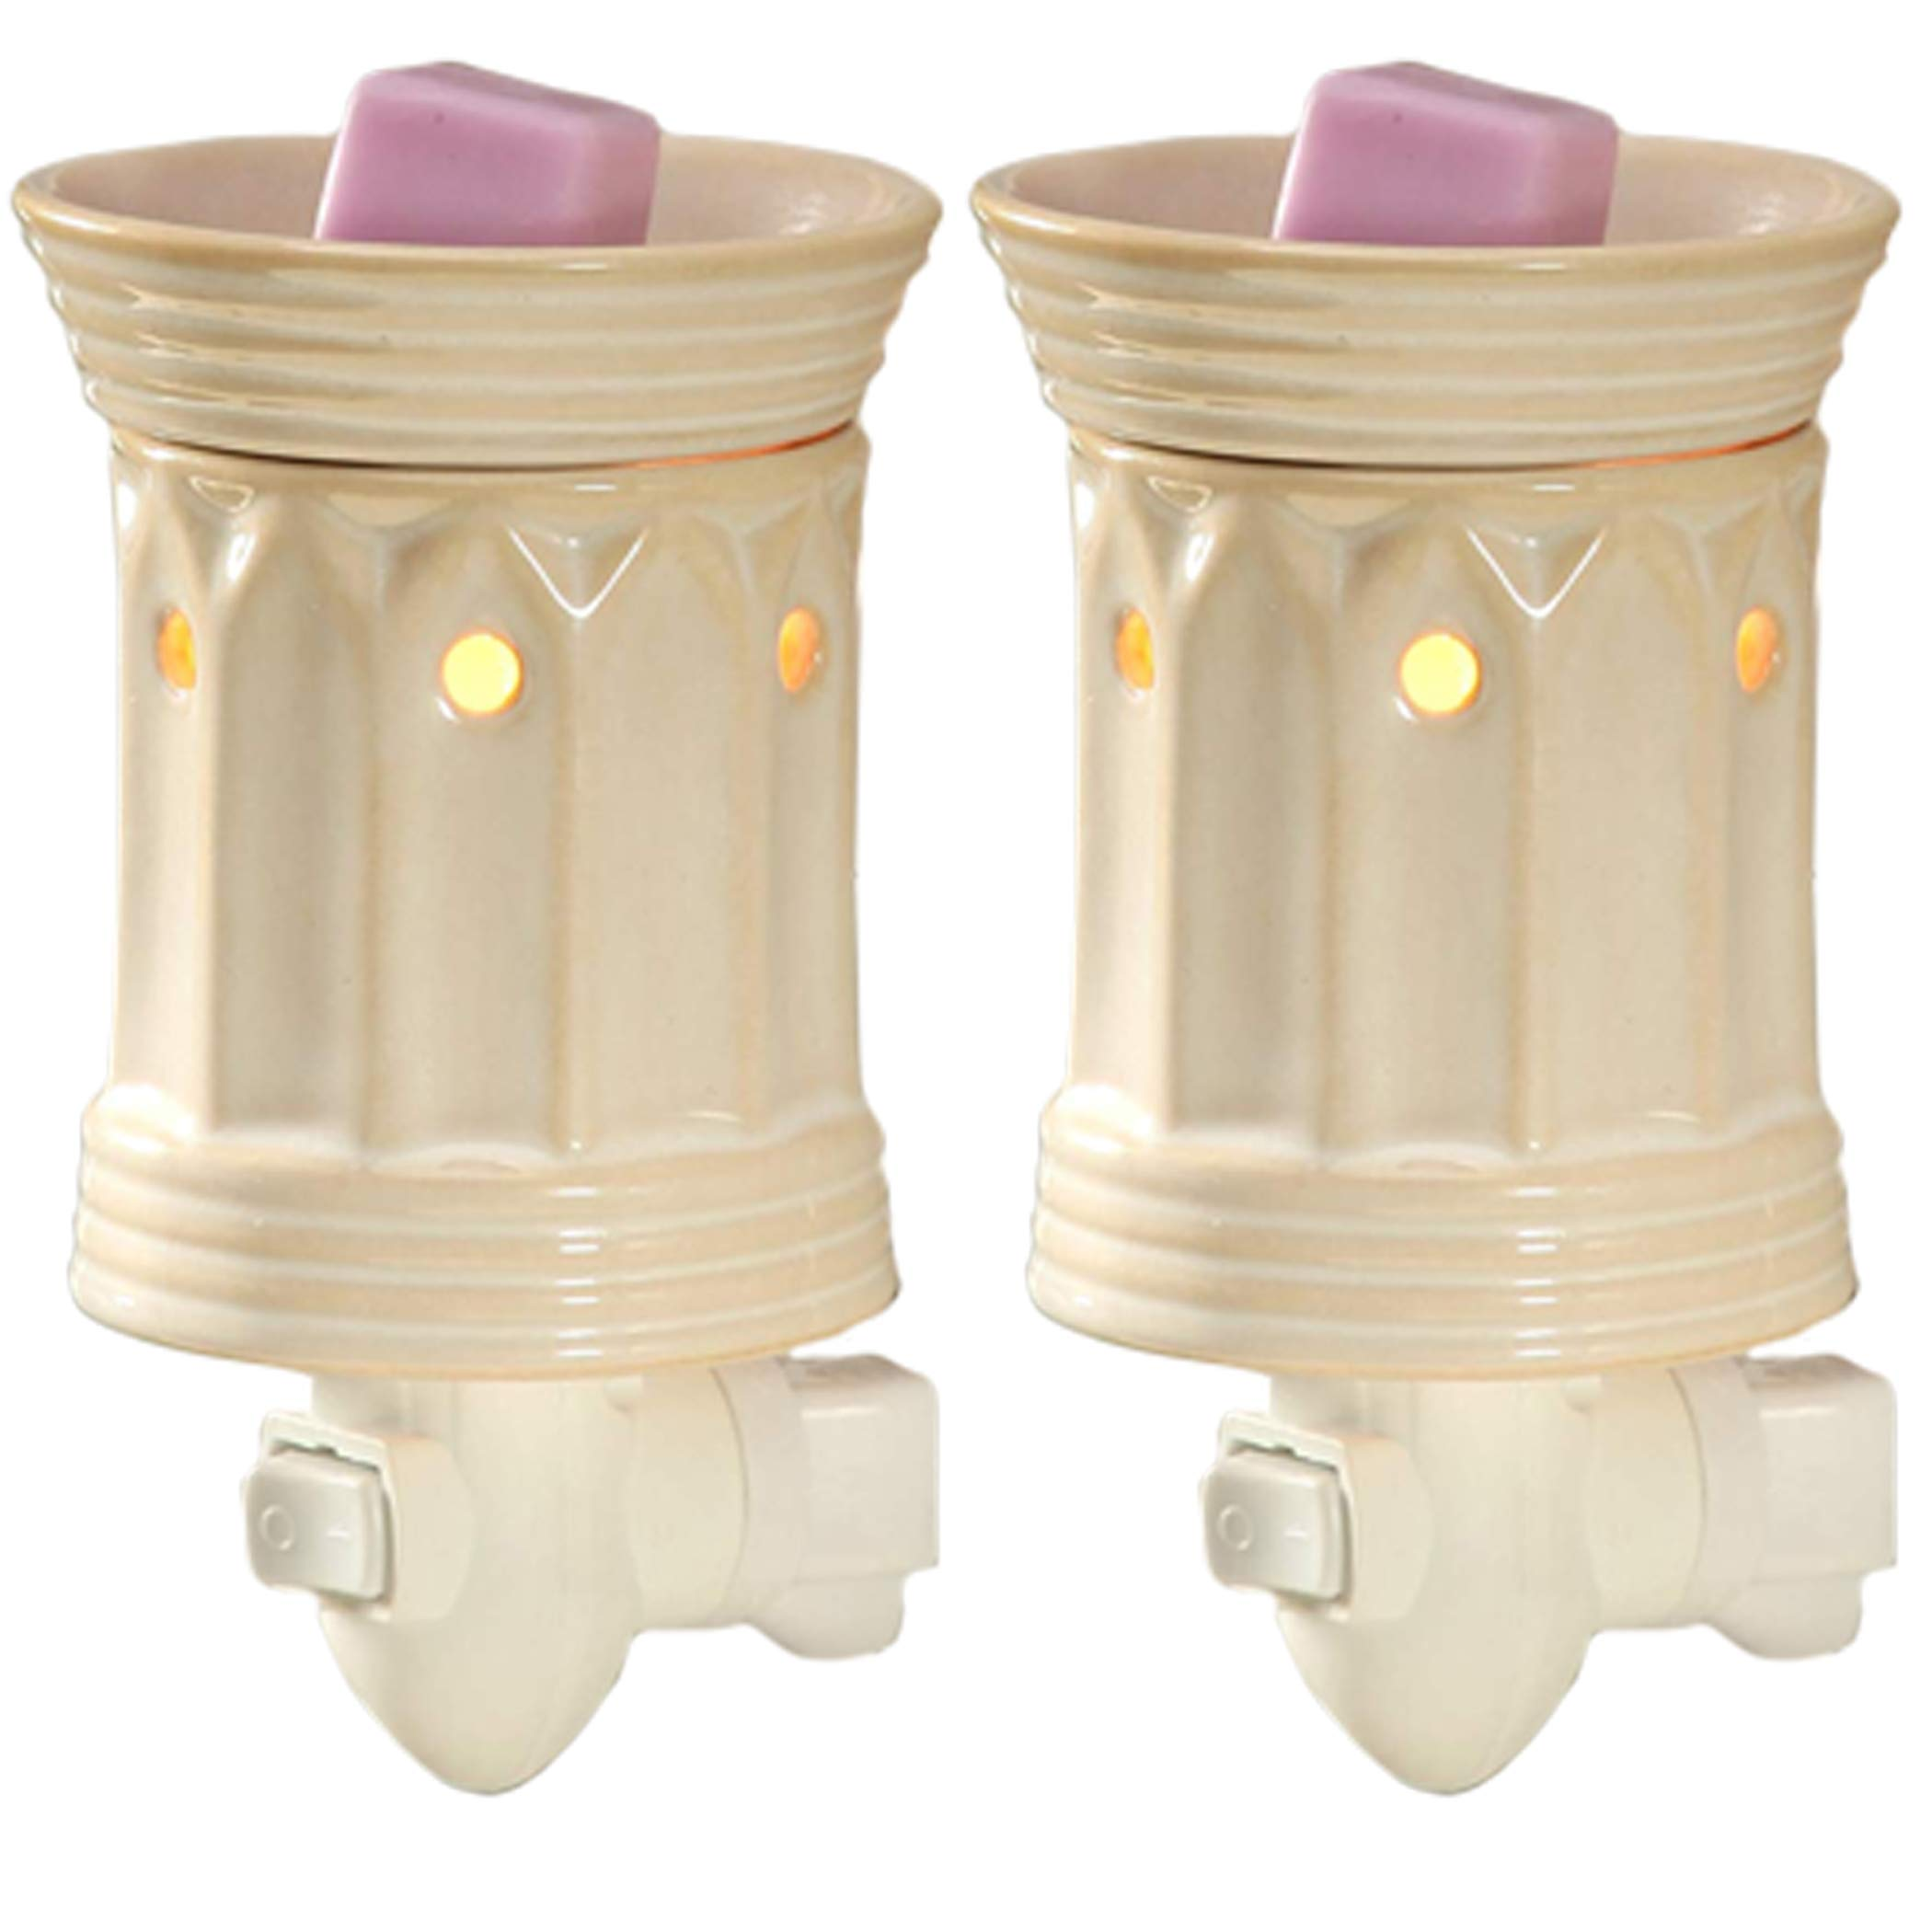 Hosley Set of 2 Cream Ceramic Electric Wax Warmer 5.3 Inch High. Ideal Gift for Wedding Spa and Aromatherapy. Use Brand Wax Melts Cubes Essential Oils and Fragrance Oils. W1